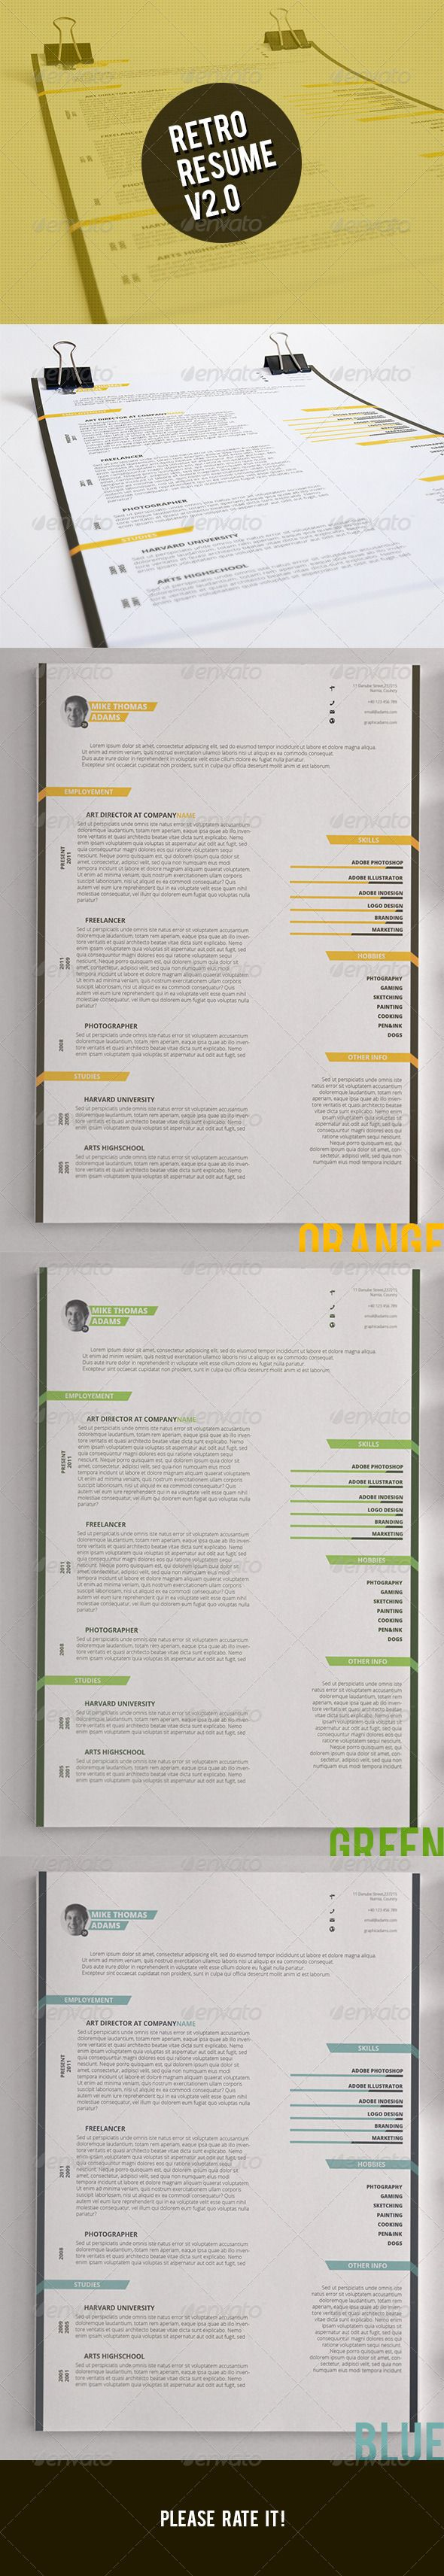 Retro Resume V20 27 best Resume Samples